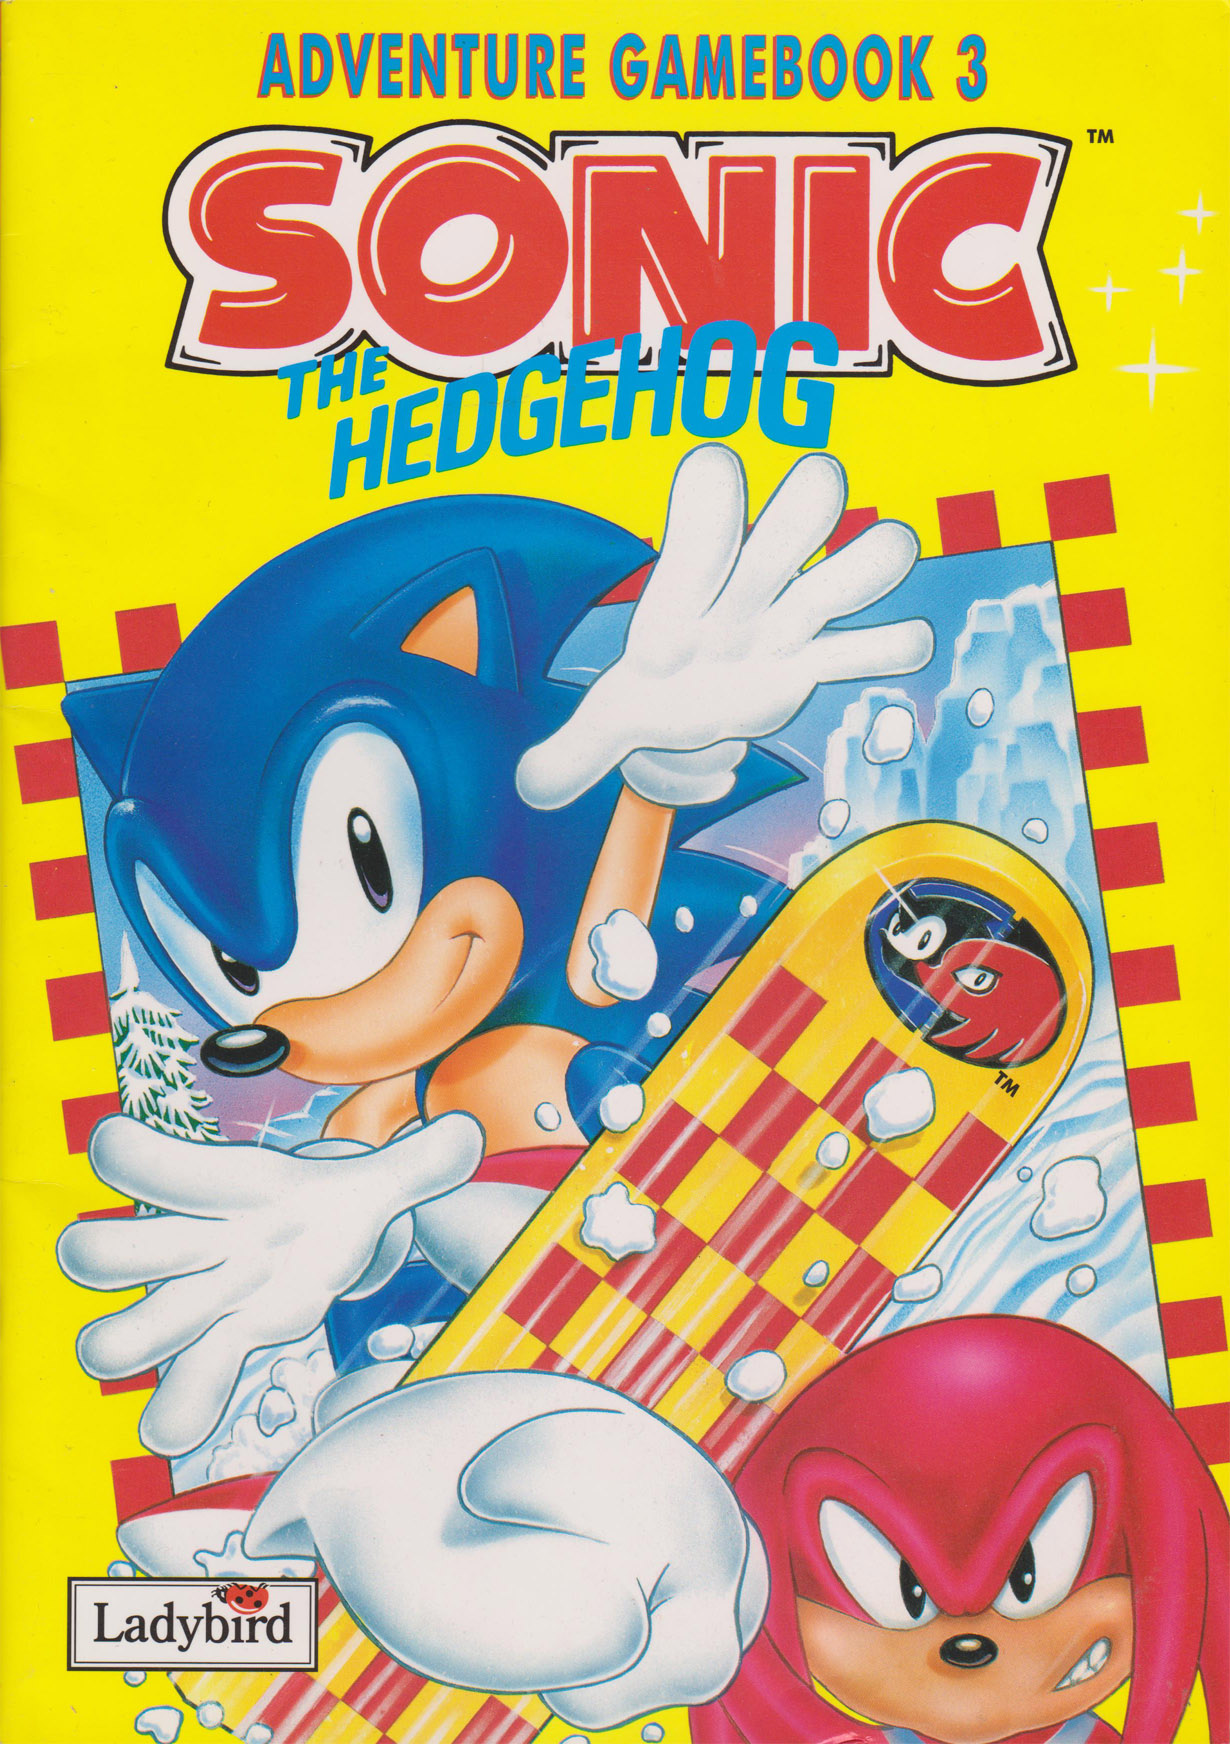 Sonic The Hedgehog Adventure Game Book 3 Segadriven